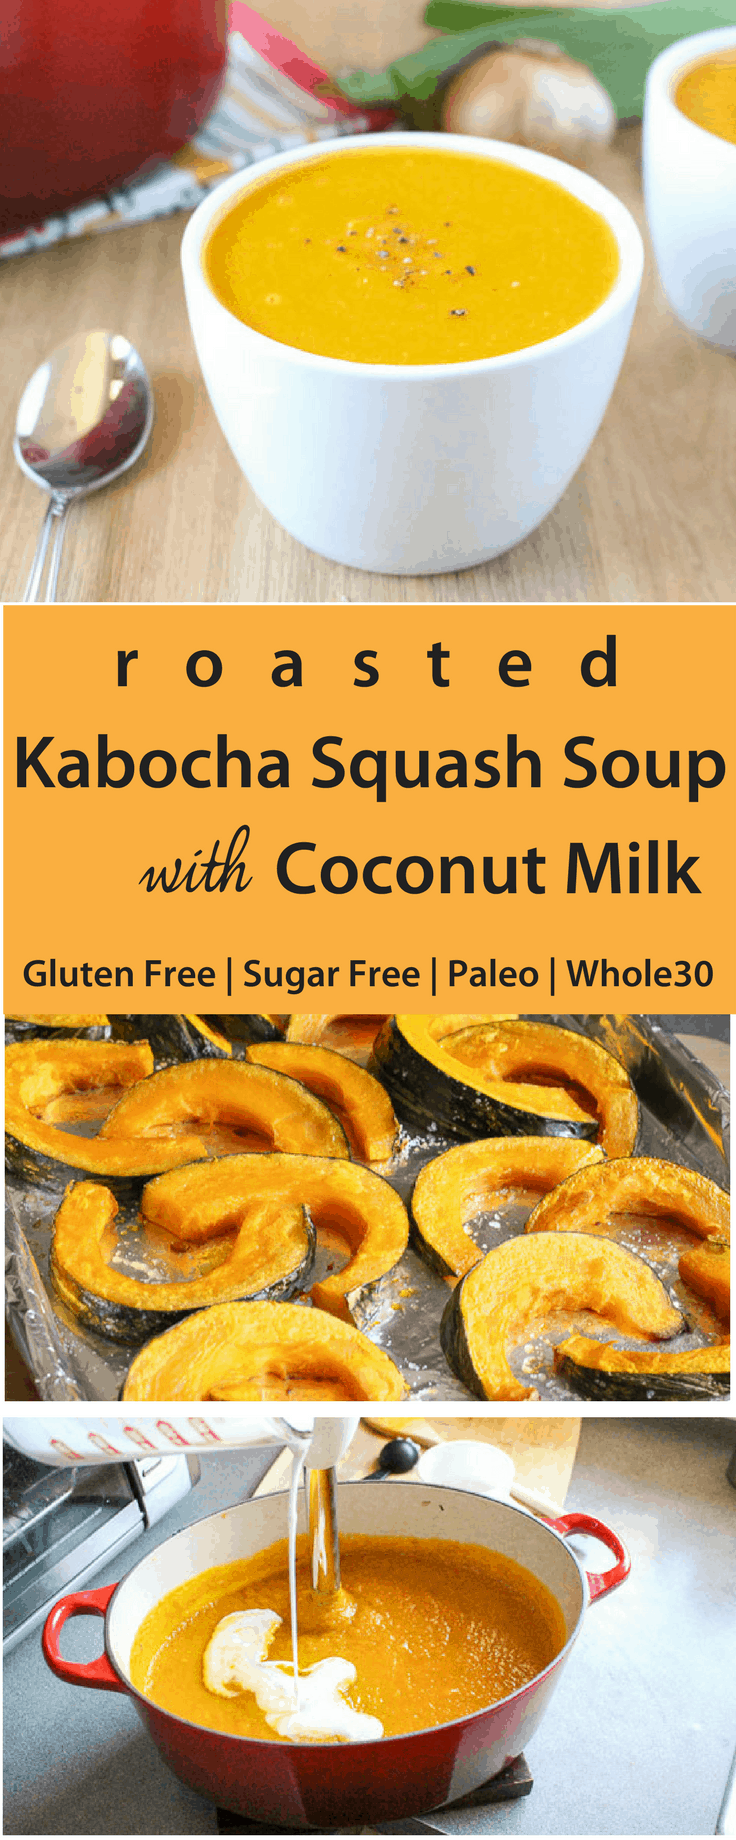 Oven Roasted Kabocha Squash Soup with Coconut Milk